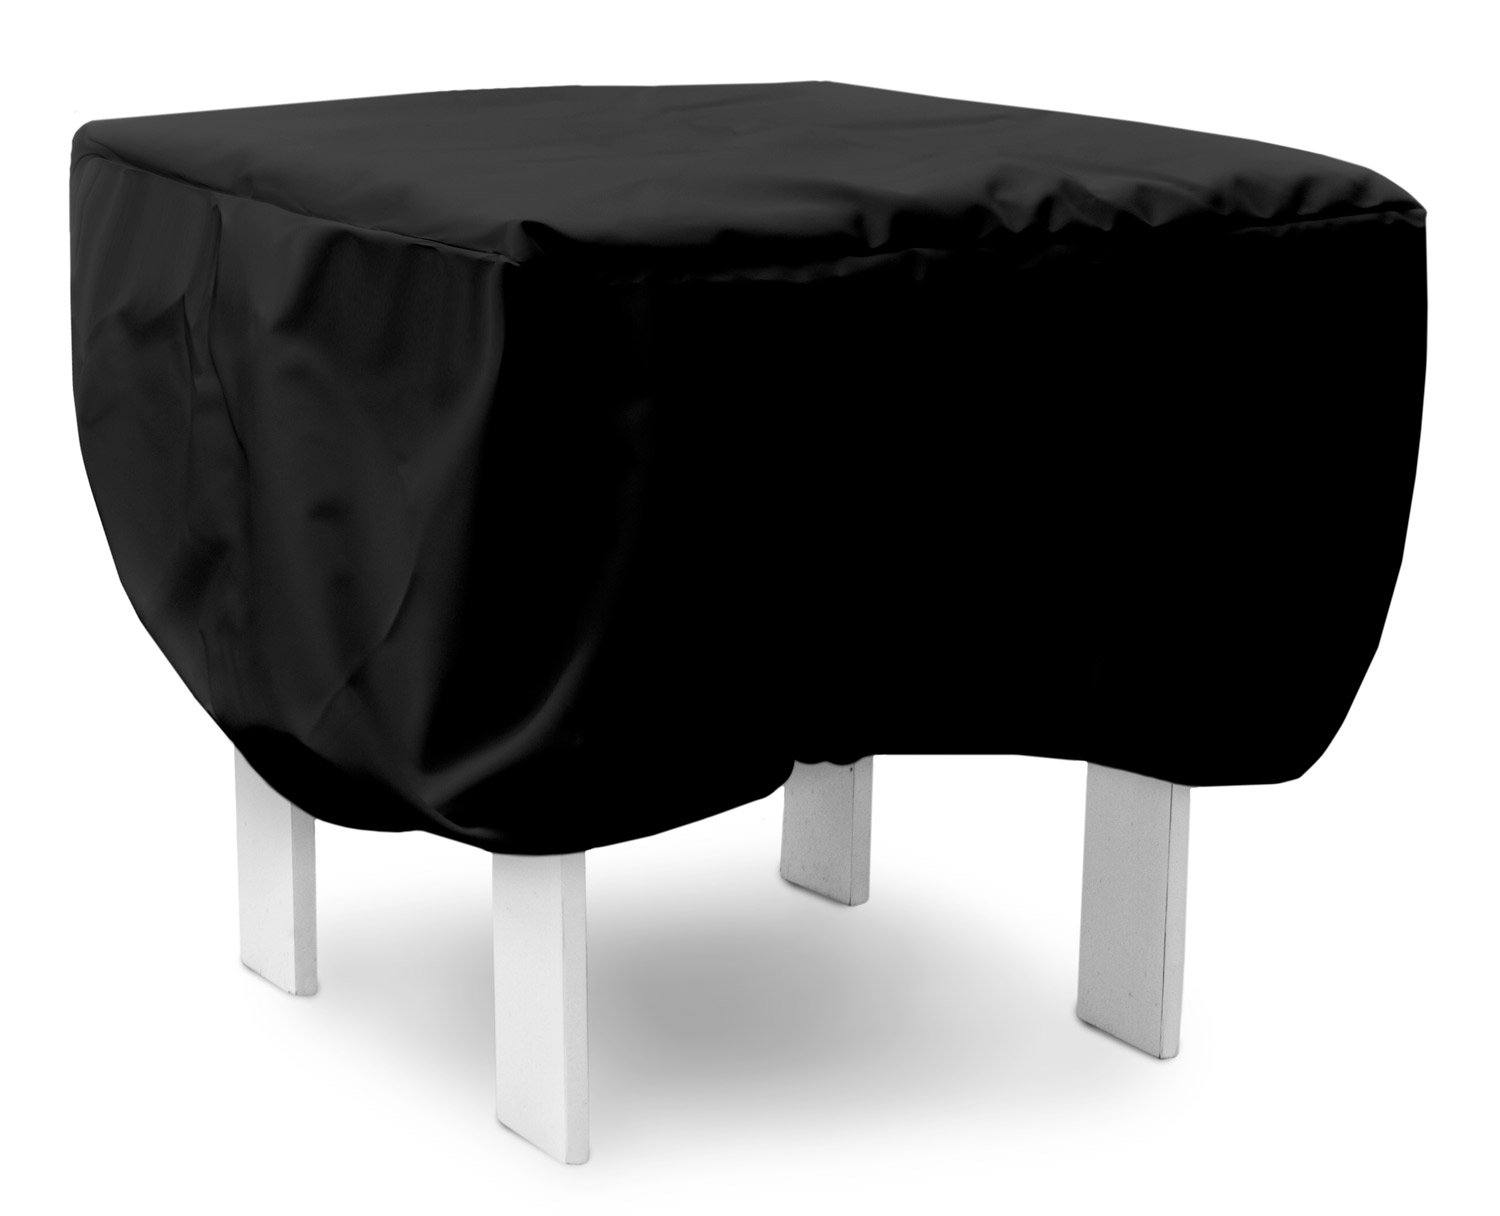 KoverRoos Weathermax 74266 40-Inch Square Table Cover, 41 by 41 by 18-Inch, Black by KOVERROOS